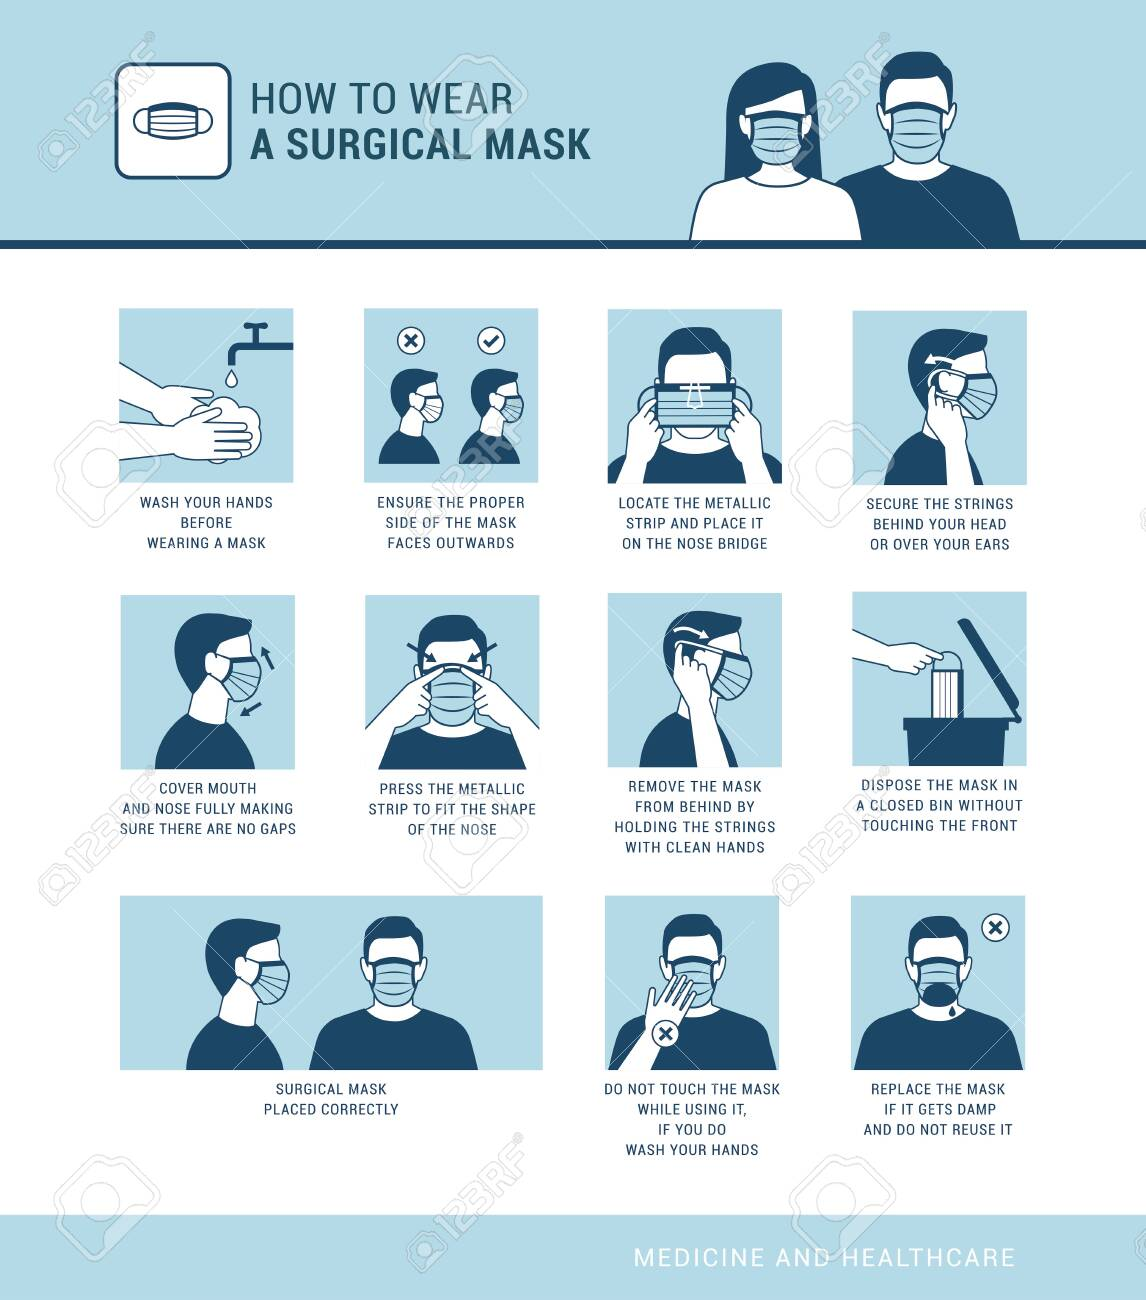 How to wear a surgical mask properly, virus outbreak prevention and pollution protection - 142174433